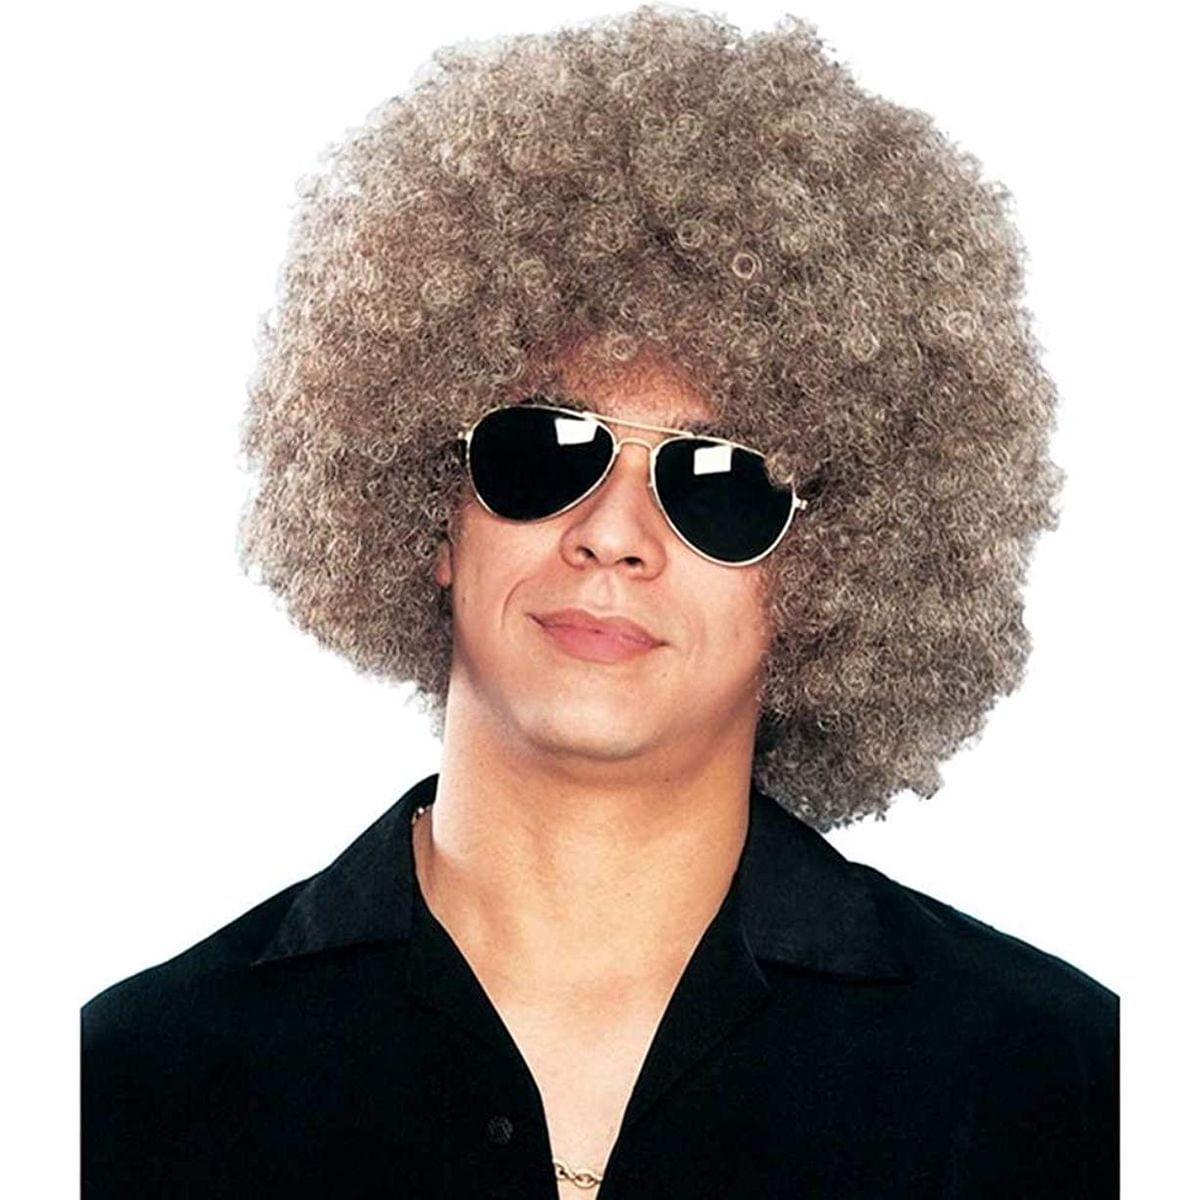 Disco Afro Men's Costume Wig - Mixed Blonde